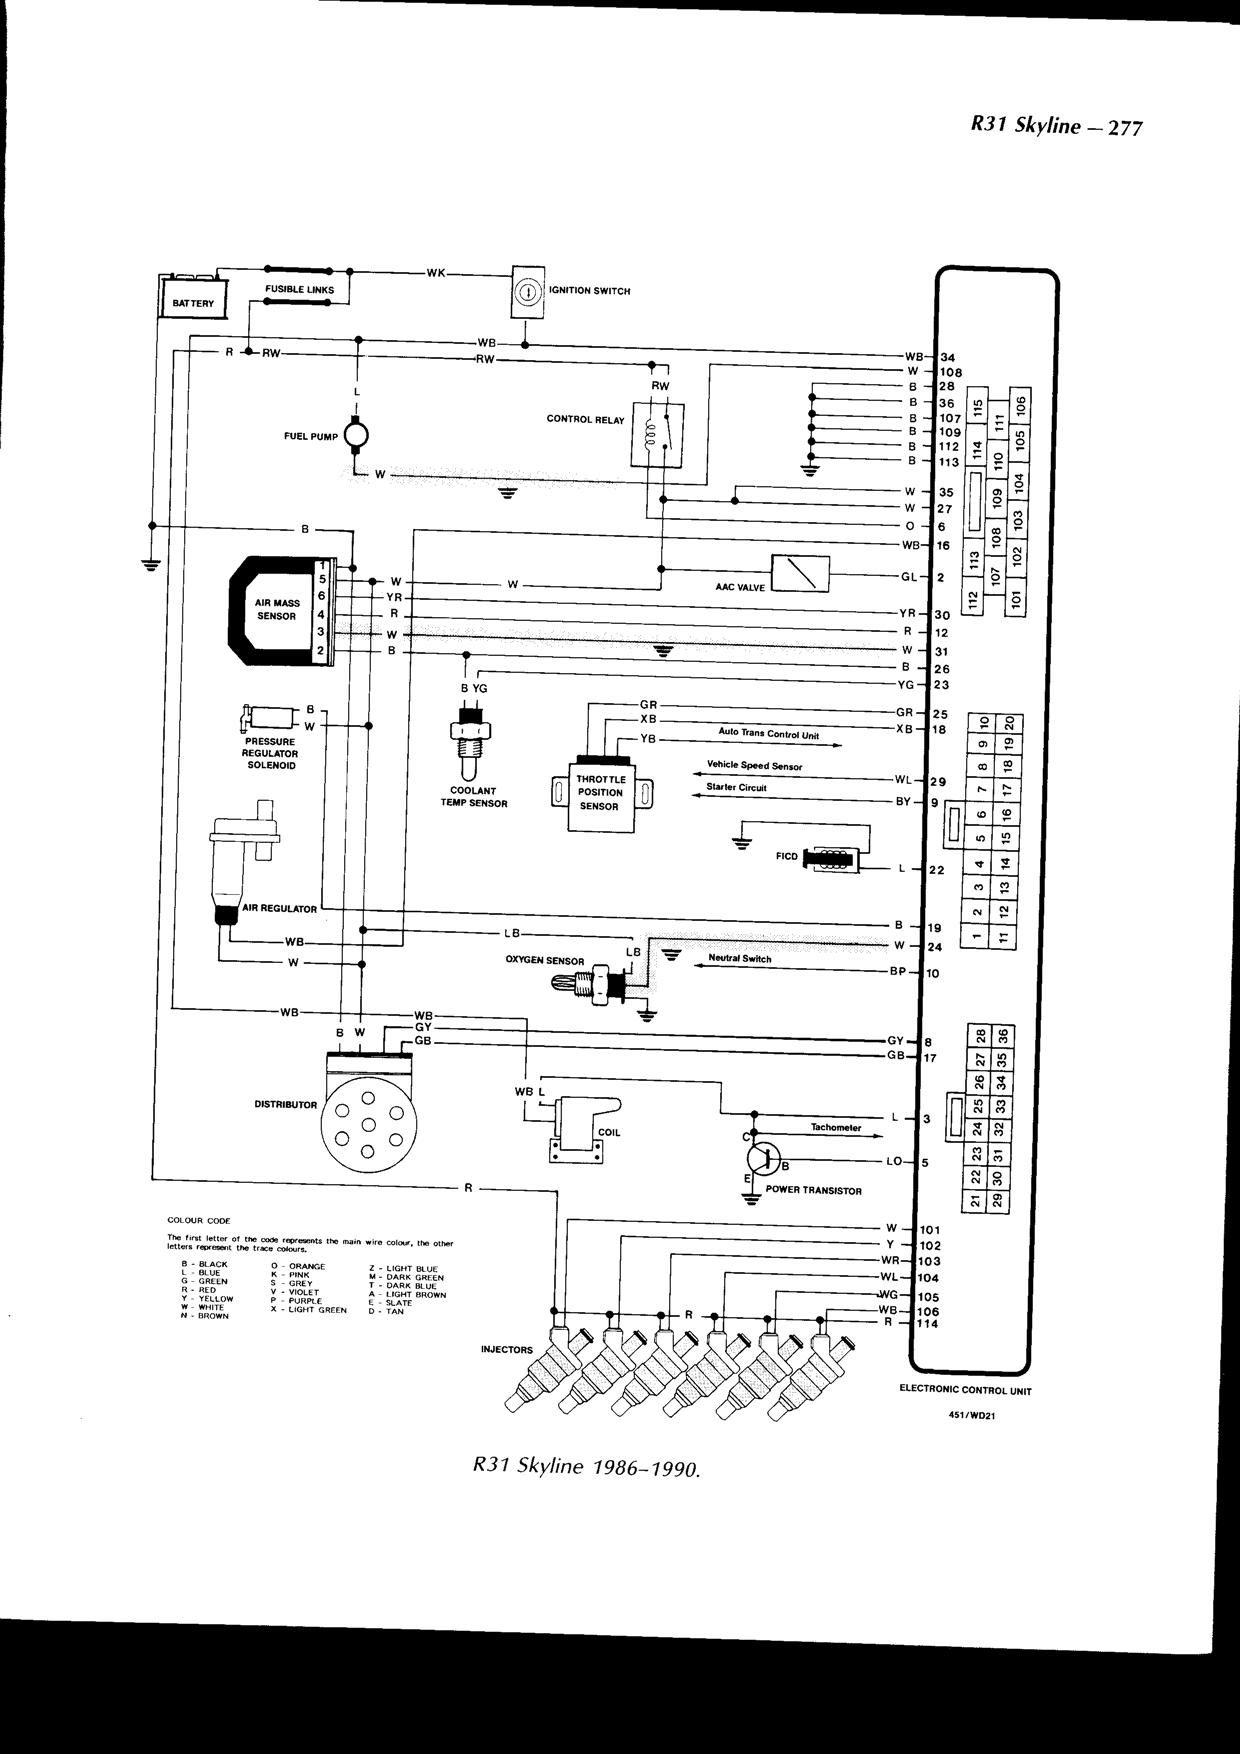 medium resolution of datsun 510 headlight wiring diagram wiring library datsun 510 headlight wiring diagram